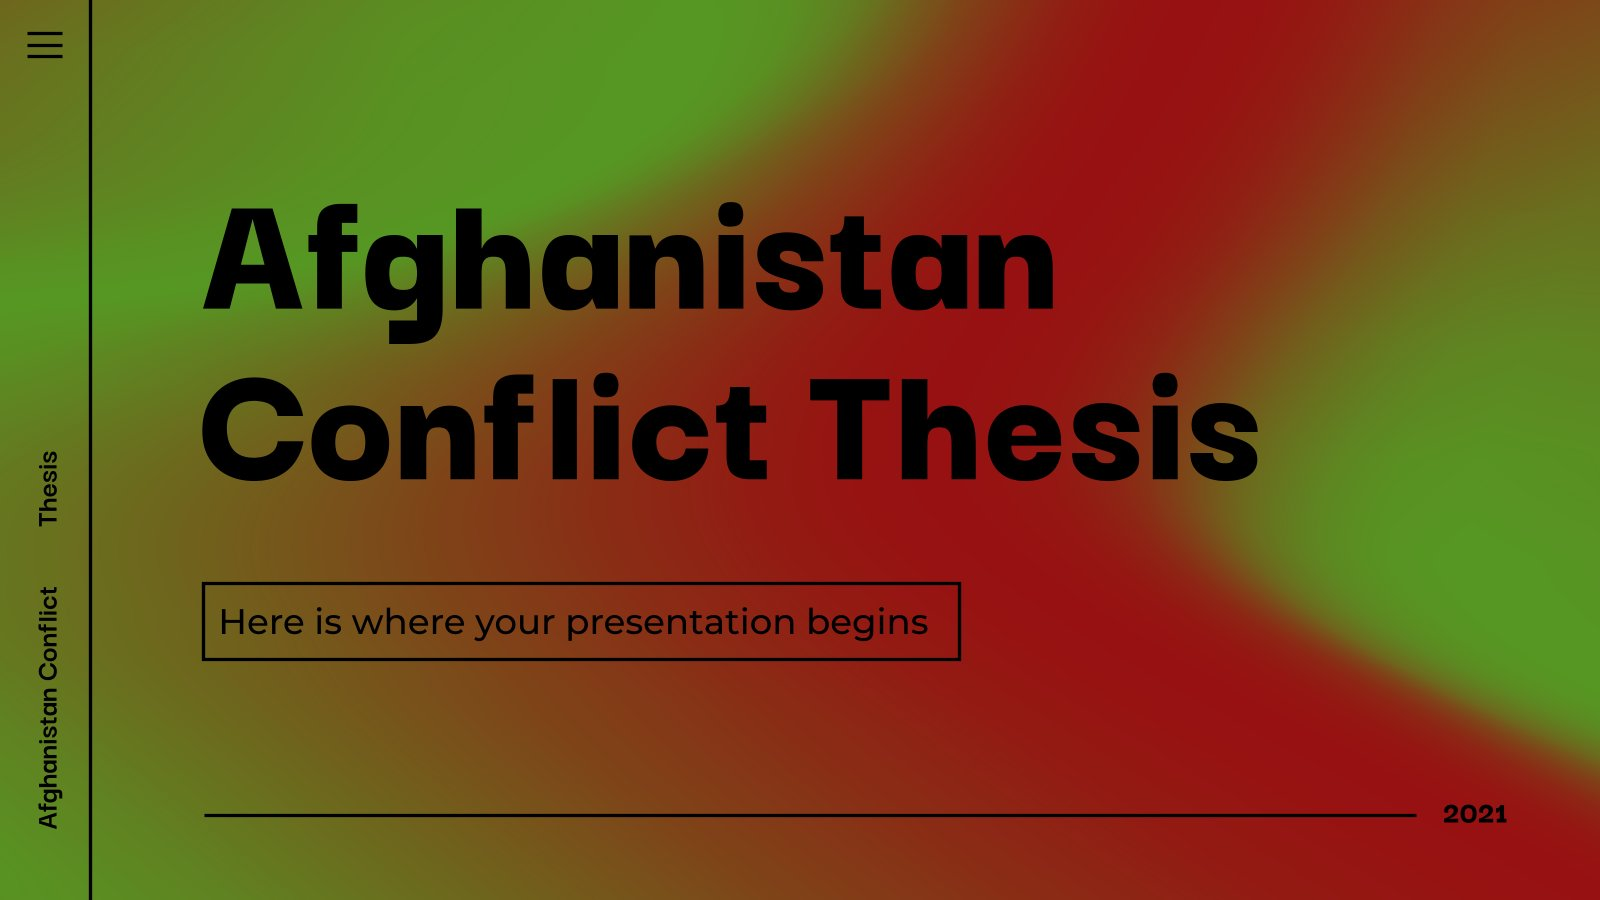 Afghanistan Conflict Thesis presentation template